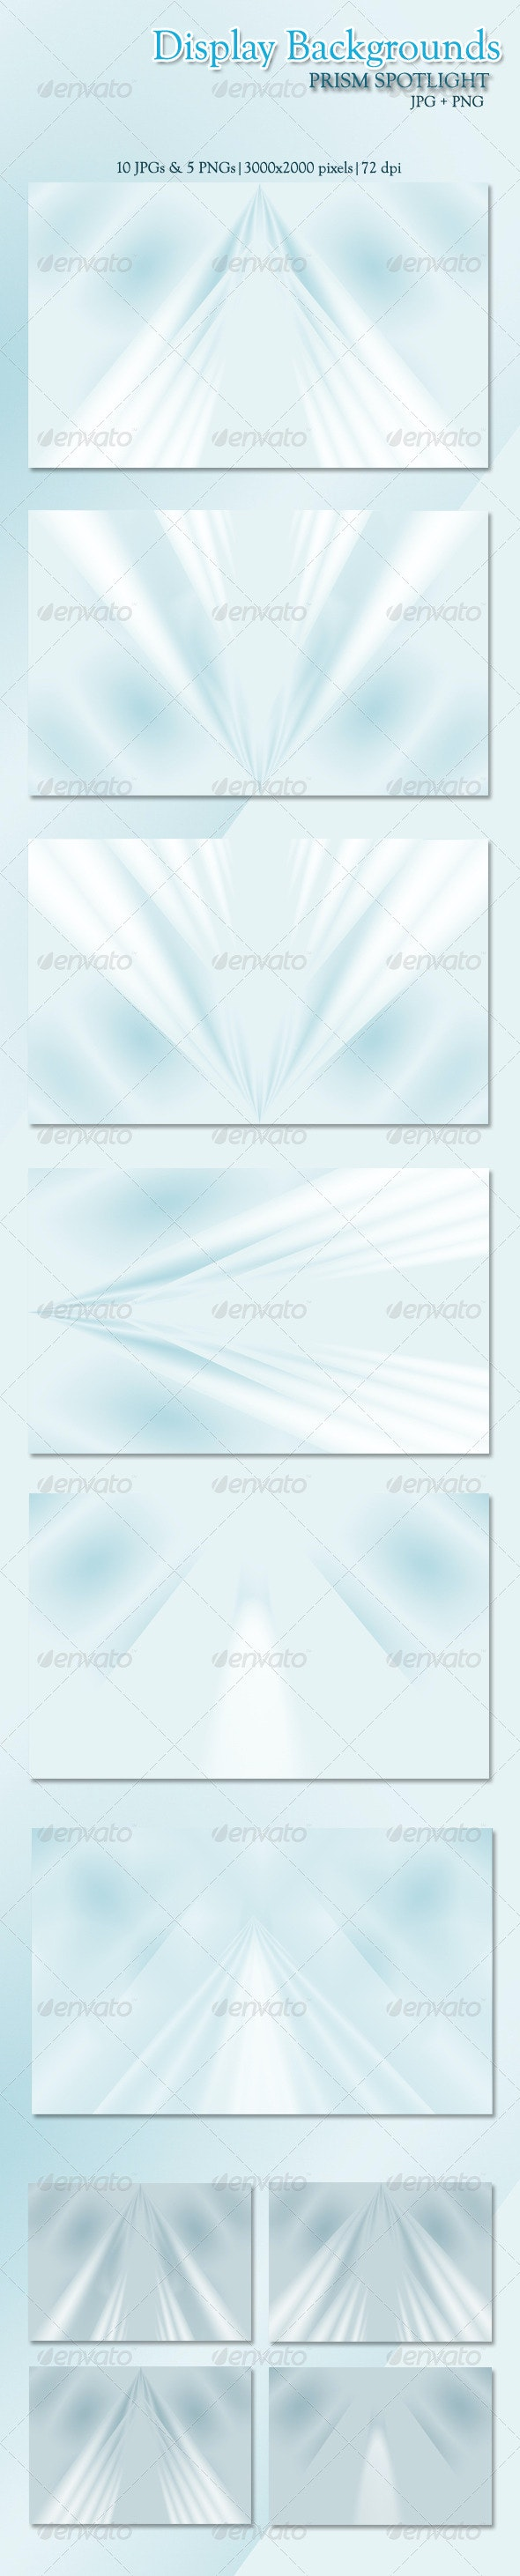 Display Backgrounds with Prism Spotlight (JPG + PN - Backgrounds Graphics